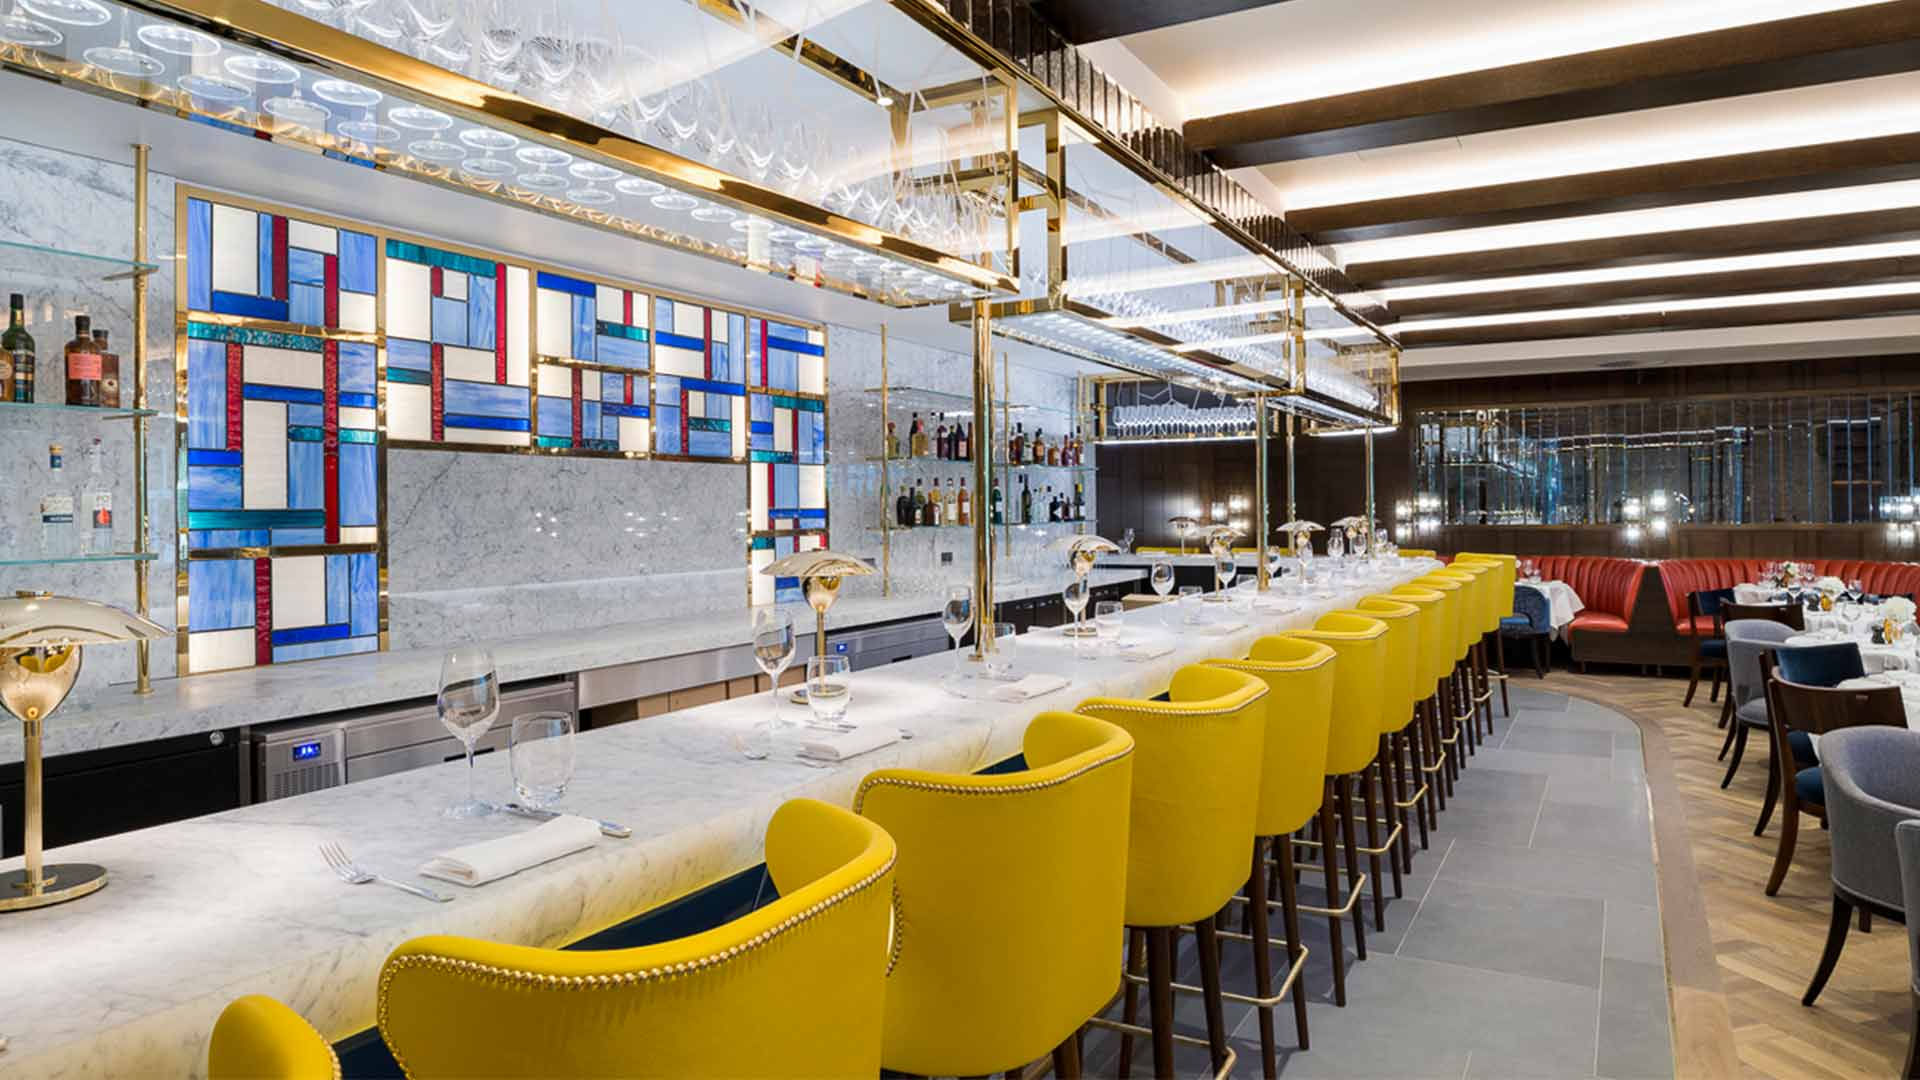 Integrated LED Lighting Glass Shelving Elegant Marble Bar Mondrain Feature Wall Yellow Stools Nulty